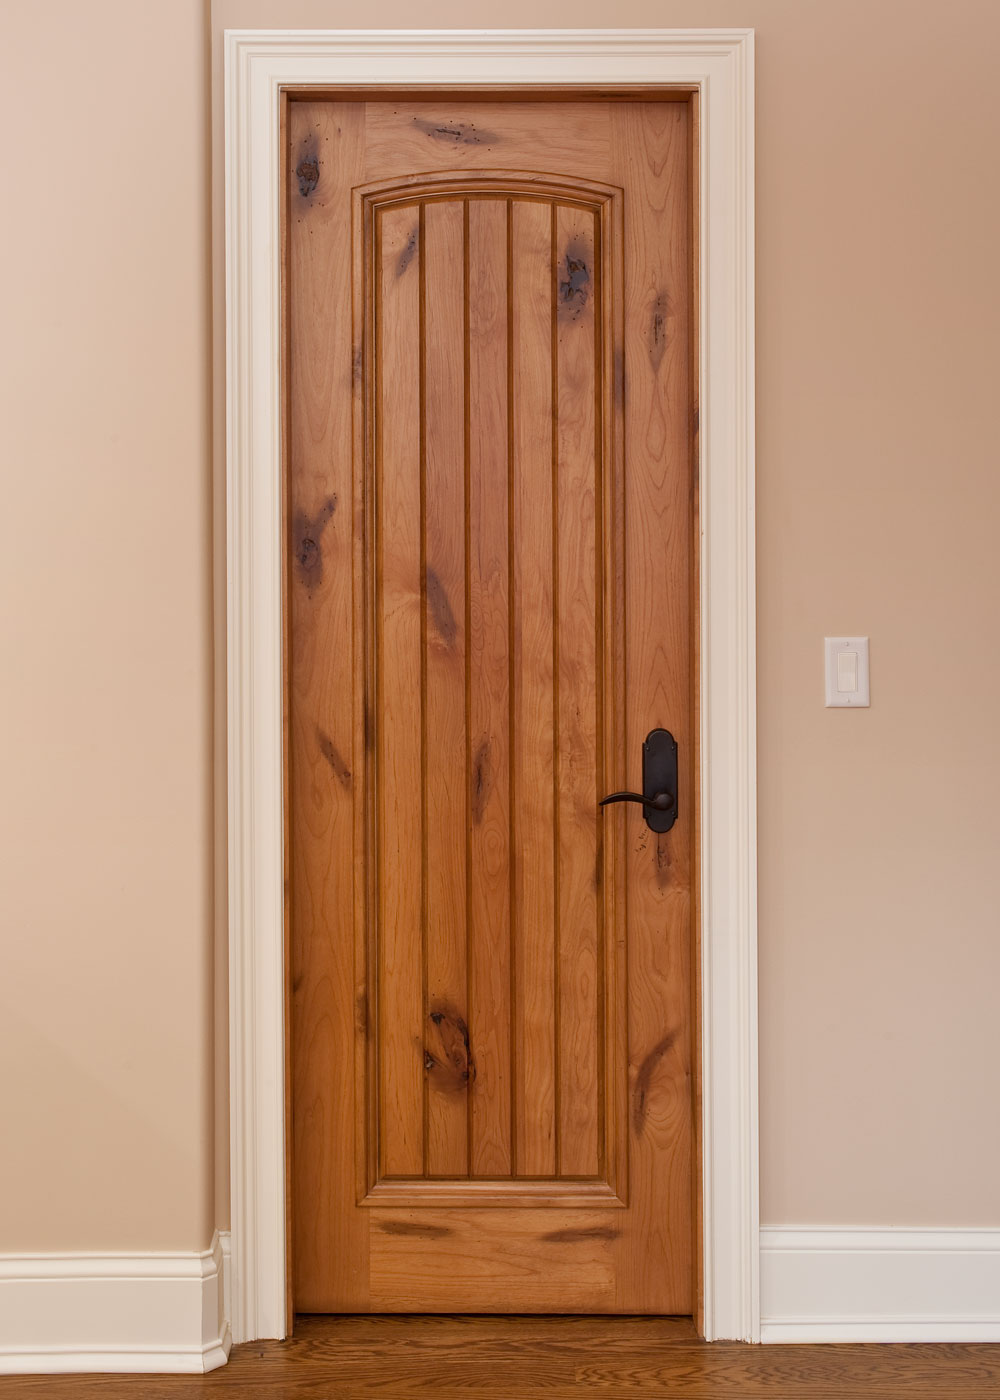 Knotty alder door with white trim and planked detail in center.